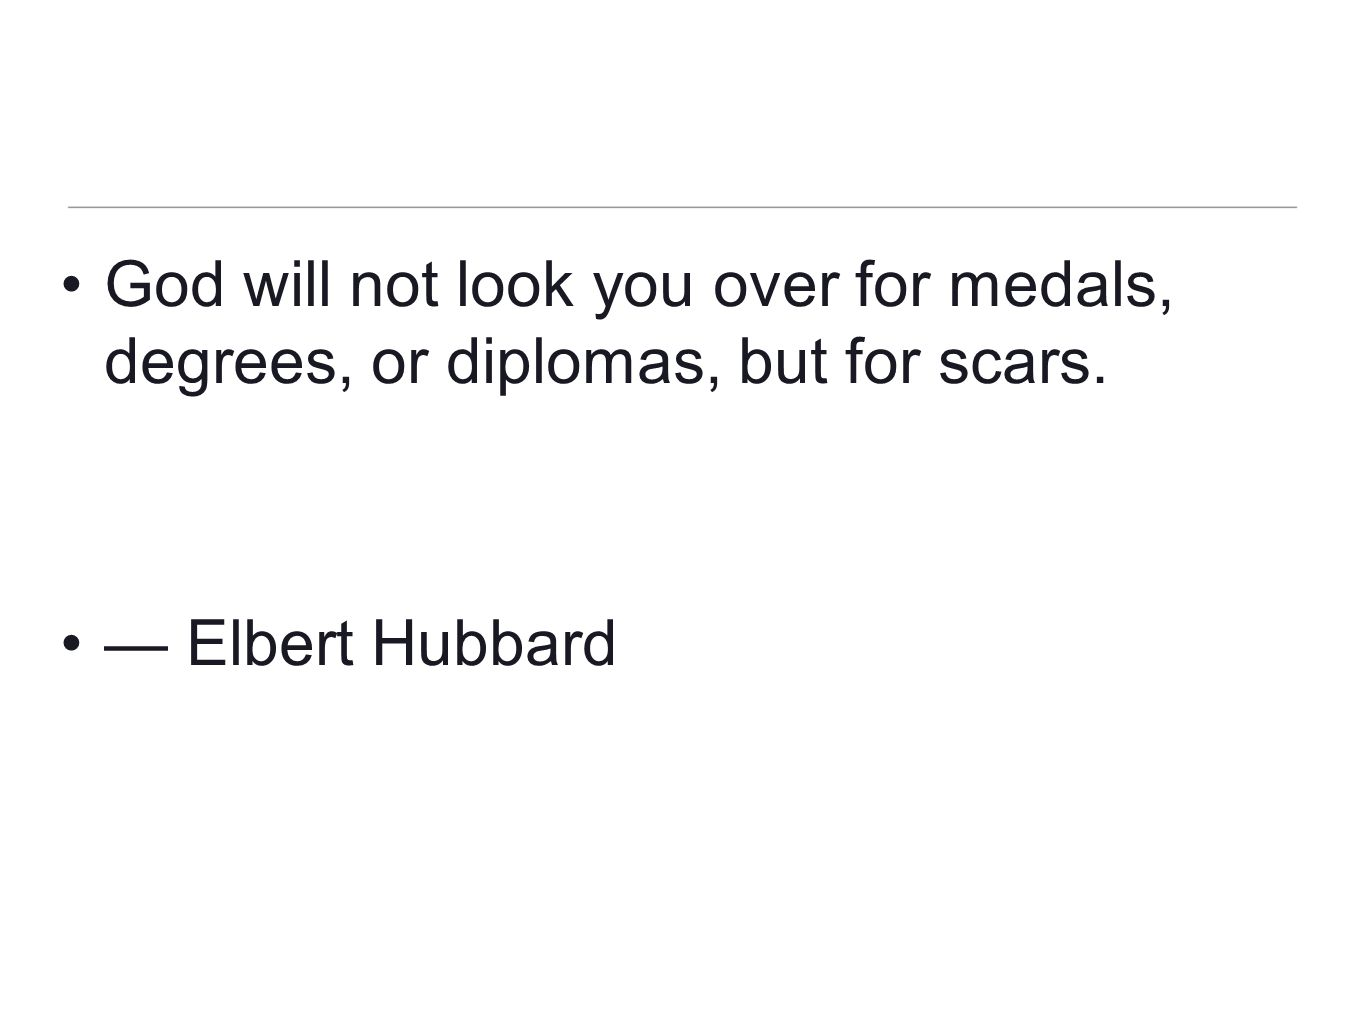 God will not look you over for medals, degrees, or diplomas, but for scars.